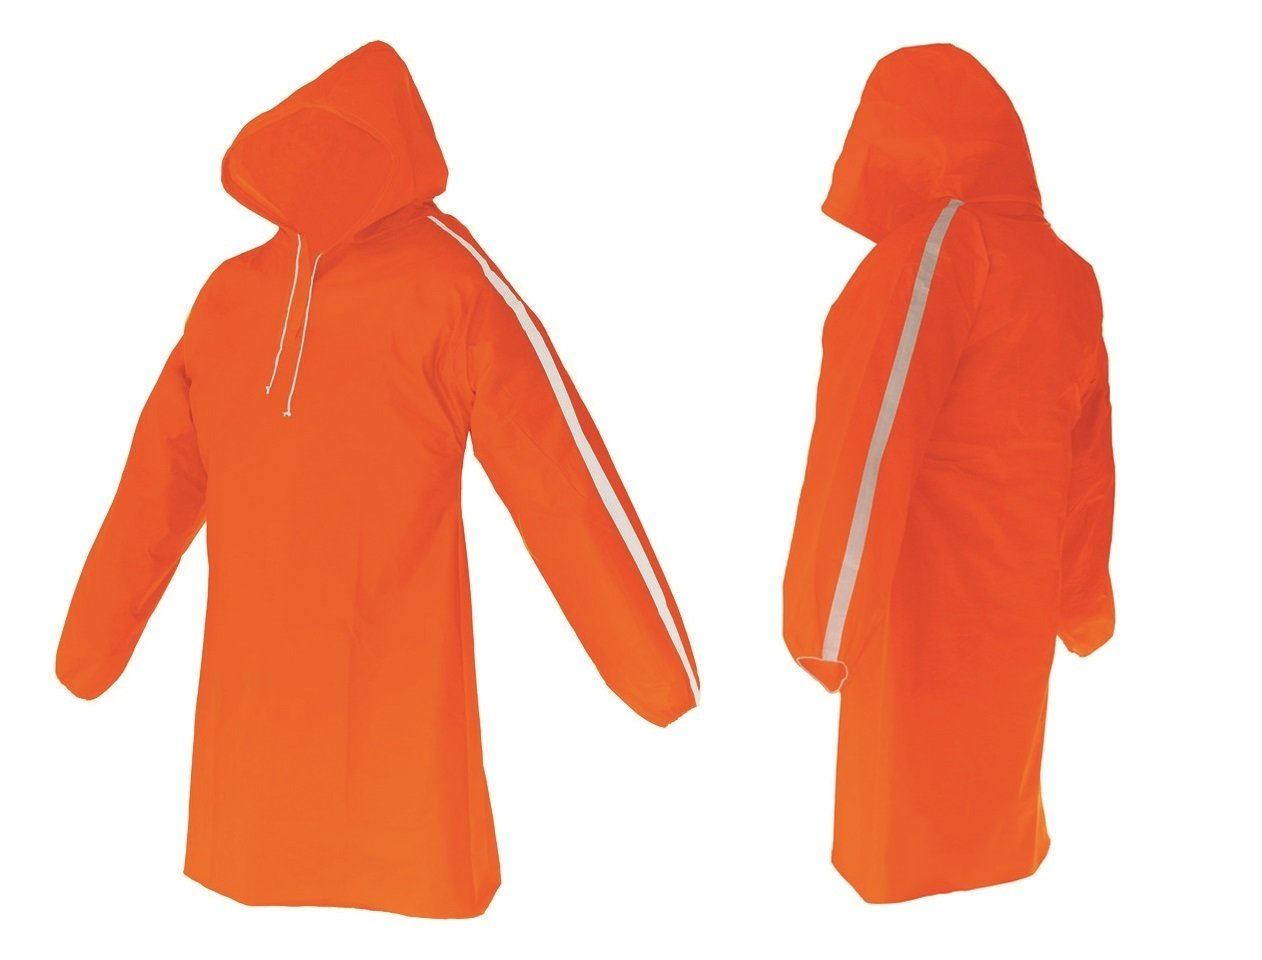 AllWeatherWare (1-Piece) Waterproof Breathable Lightweight Rain Poncho - Orange